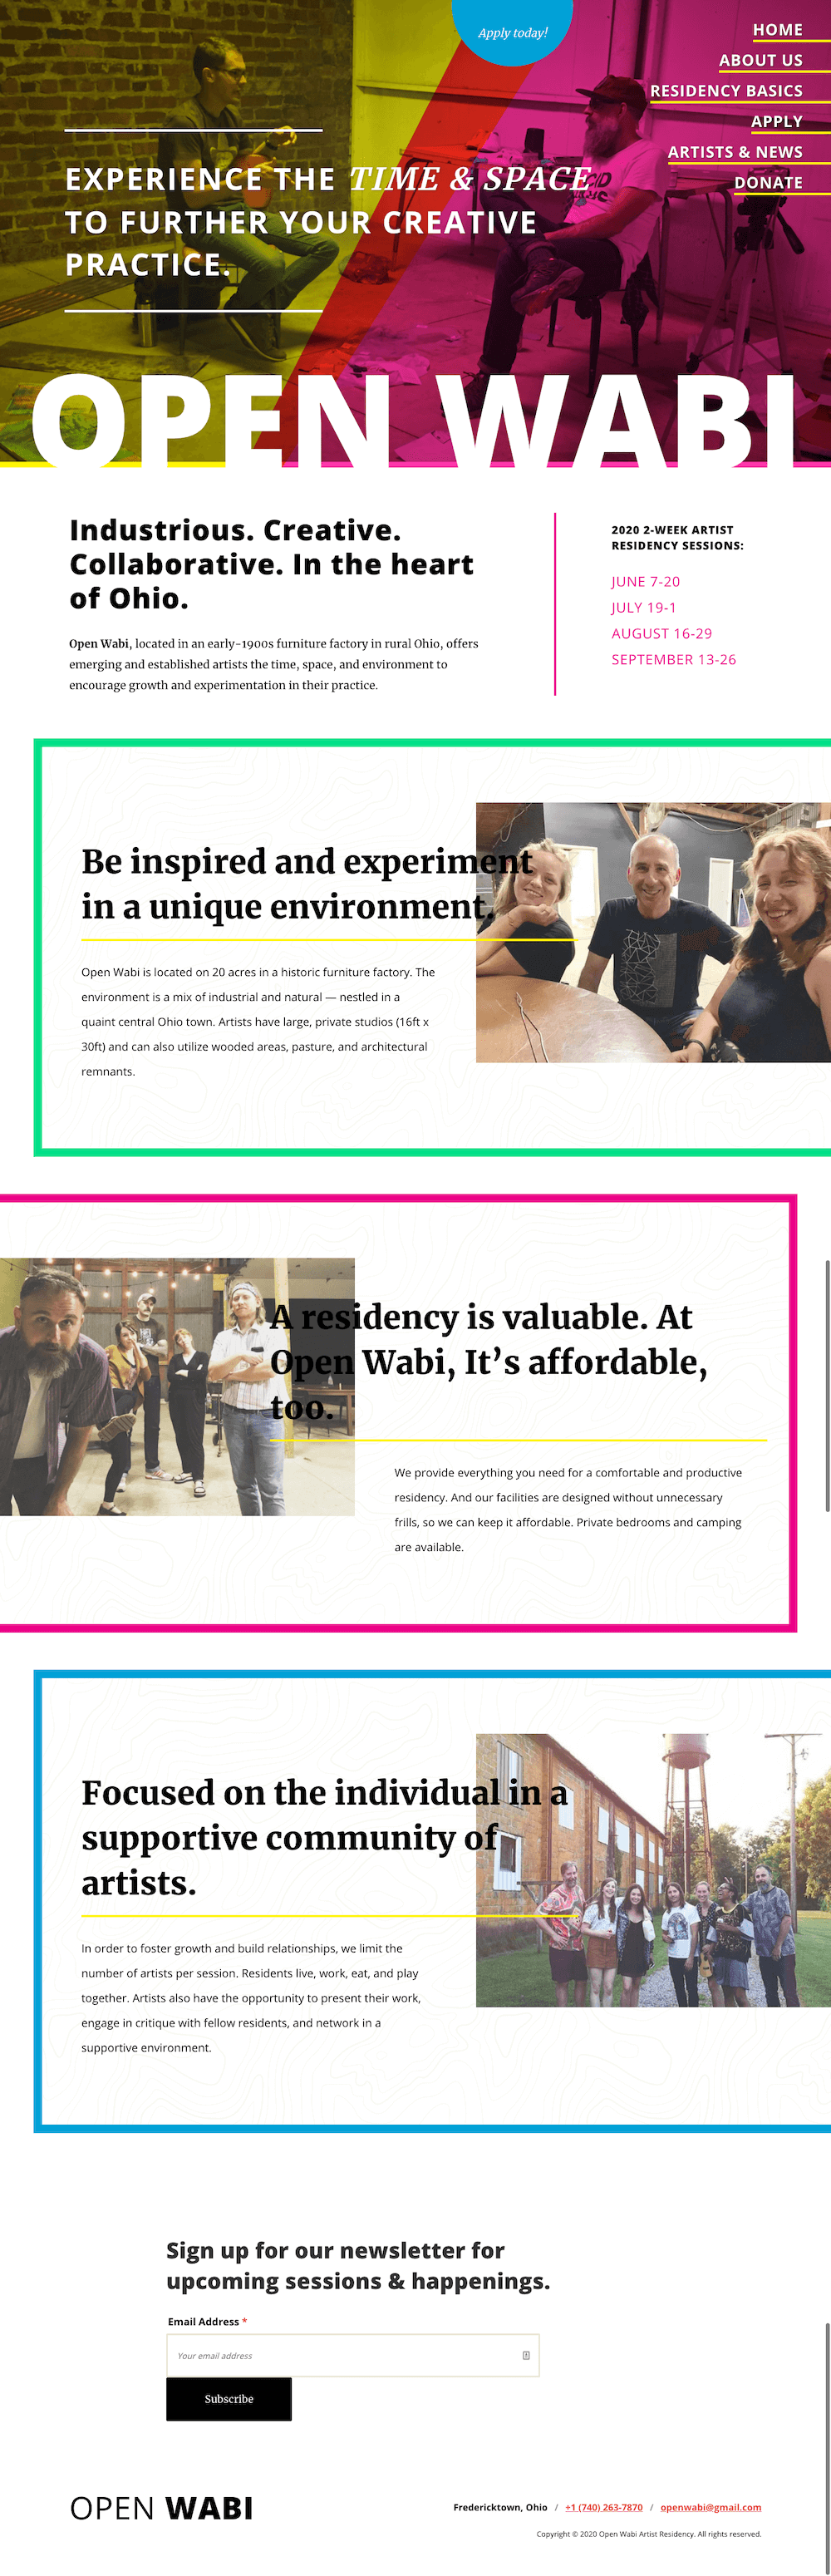 Open Wabi - Homepage